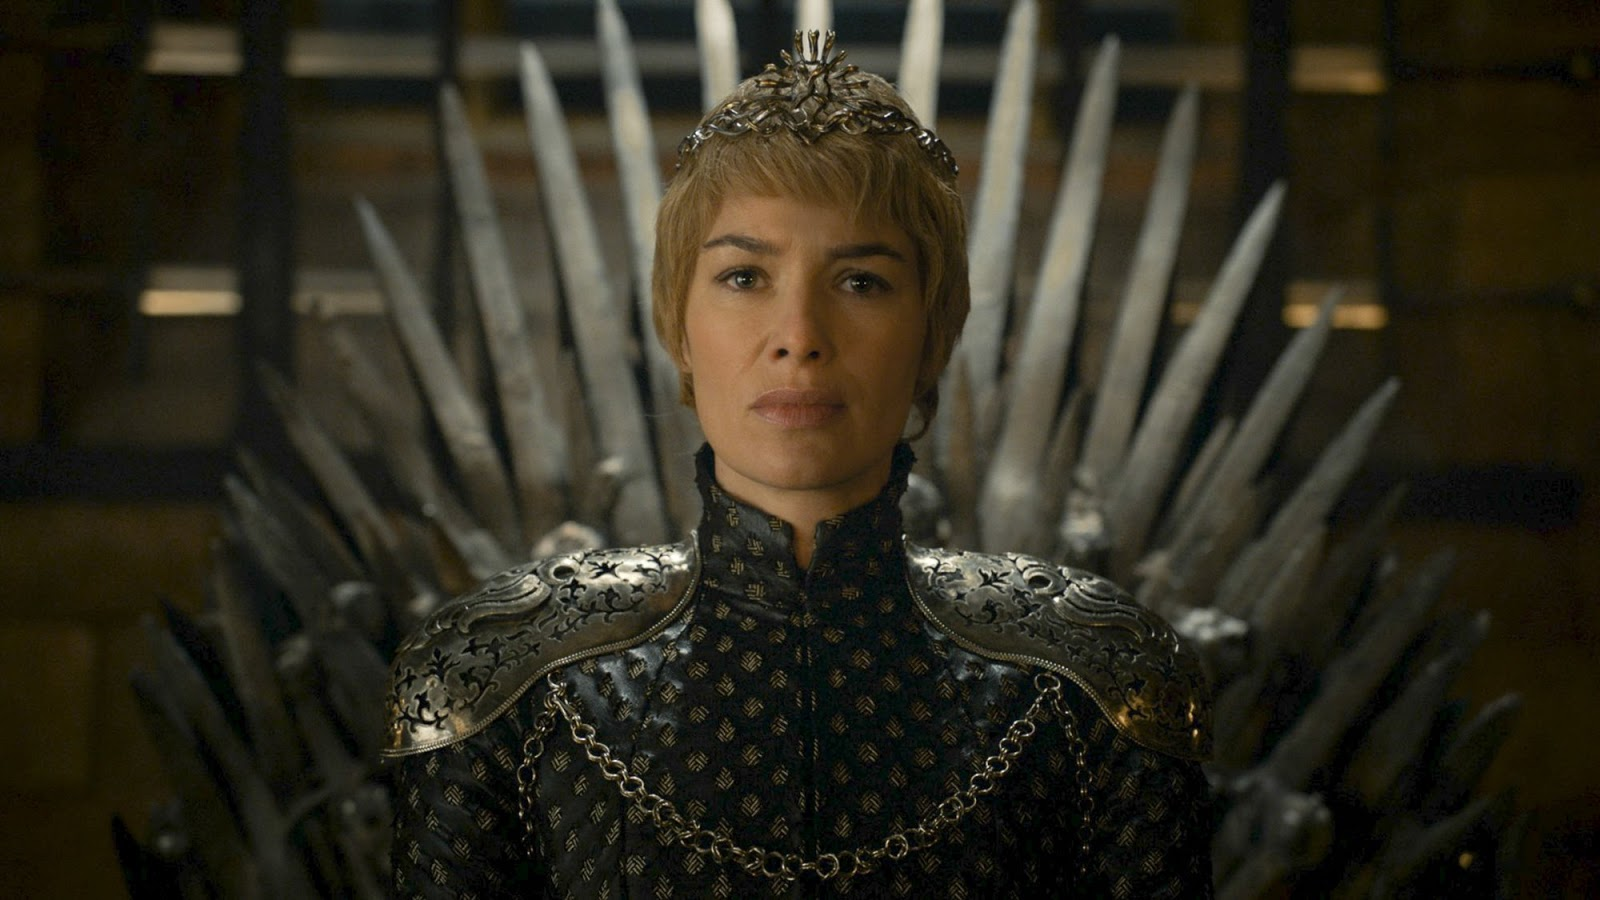 Cersei Lanniser, interpretada por Lena Headey en 'Game of Thrones'